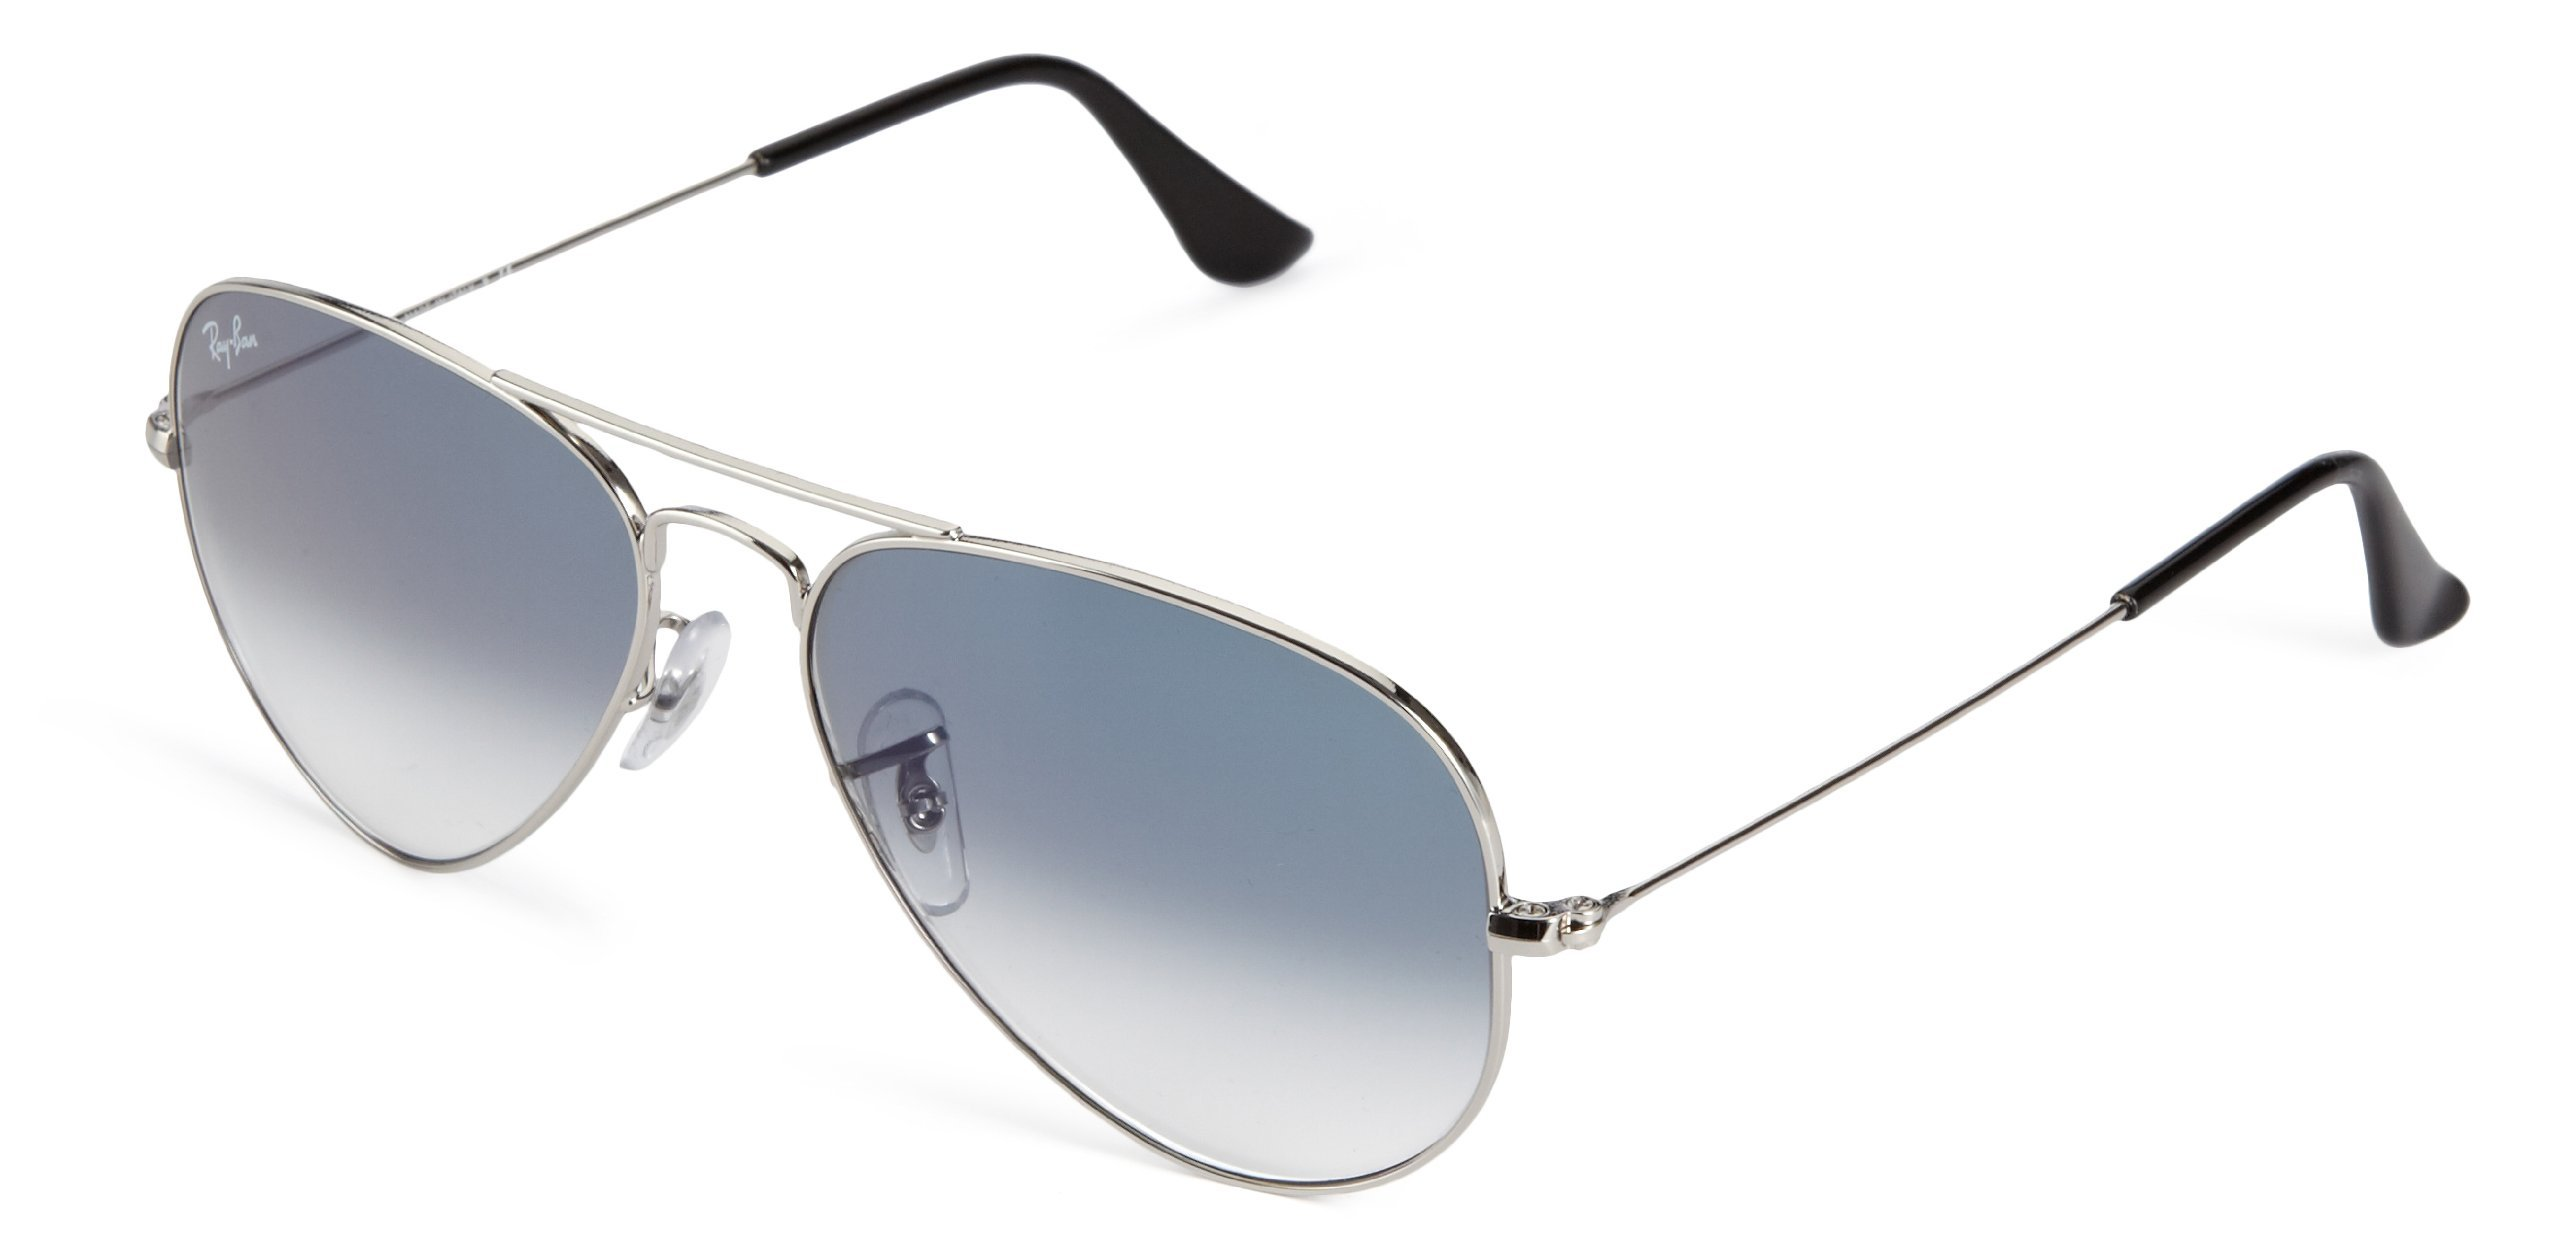 RAY-BAN RB3025 Aviator Large Metal Sunglasses, Silver/Blue Gradient, 55 mm by RAY-BAN